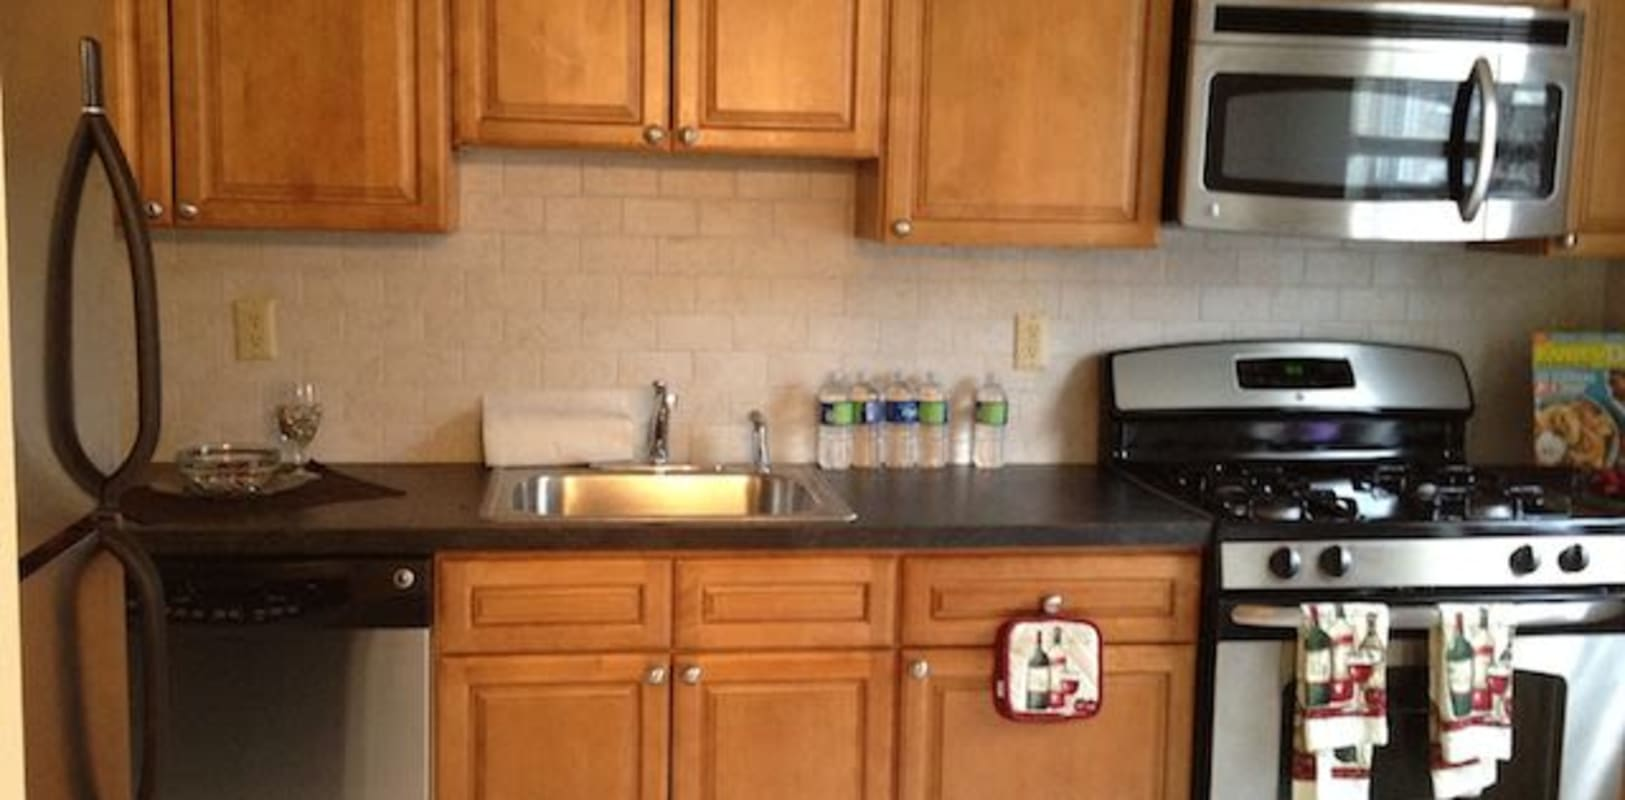 Full kitchen with new appliances and light wood cabinets at Park Lane Apartments in Little Falls, New Jersey